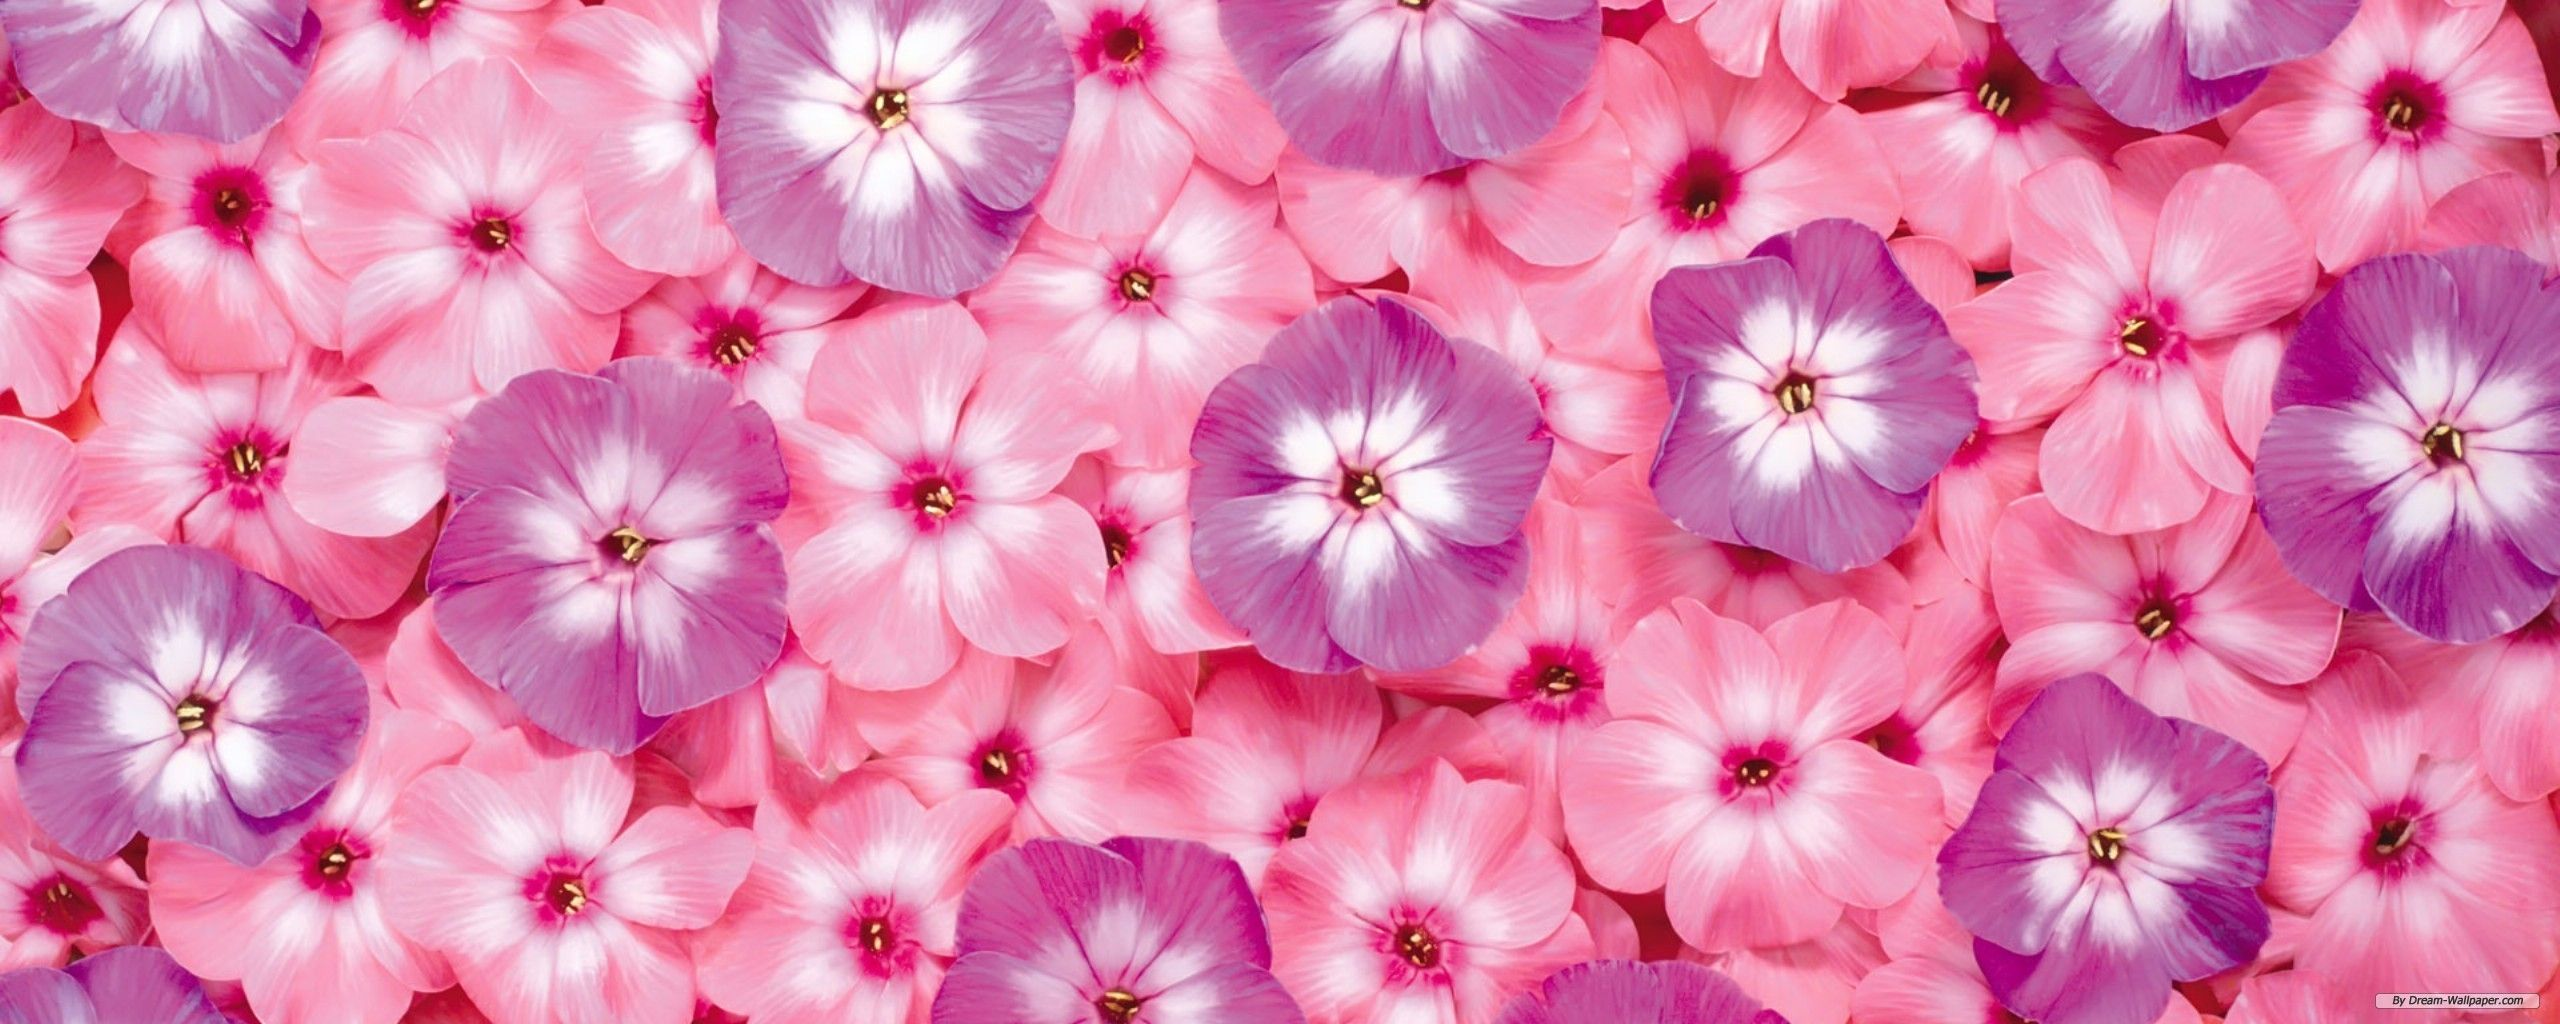 Iphone Flower Backgrounds Group 1280800 Tumblr Flower Wallpapers